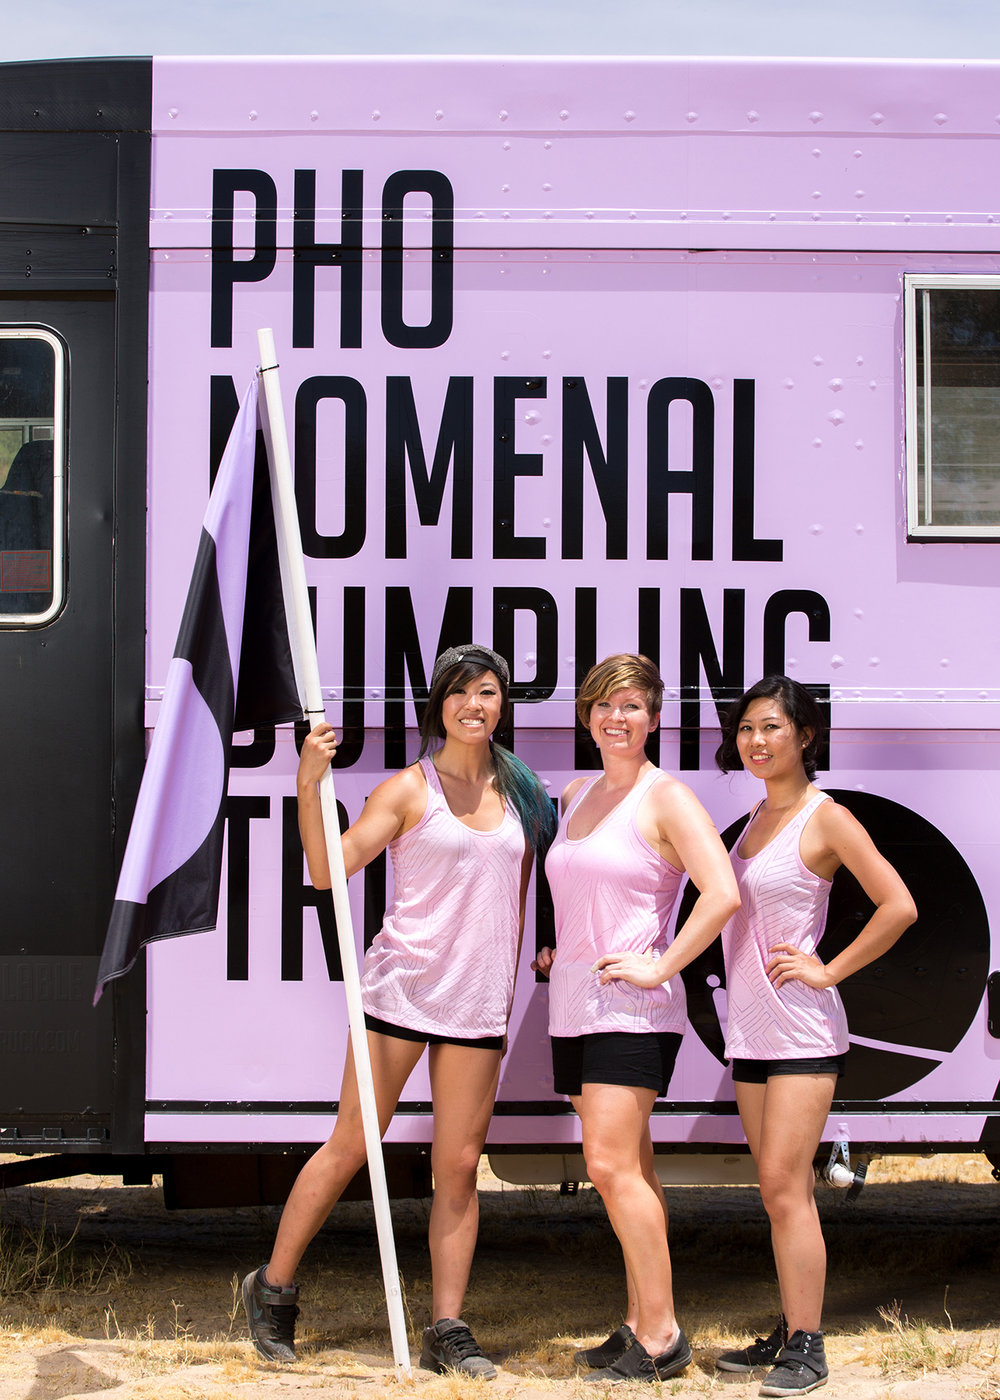 From left to right: Sunny Lin, Becca Plumlee, Sophia Woo. Photo credit: Food Network